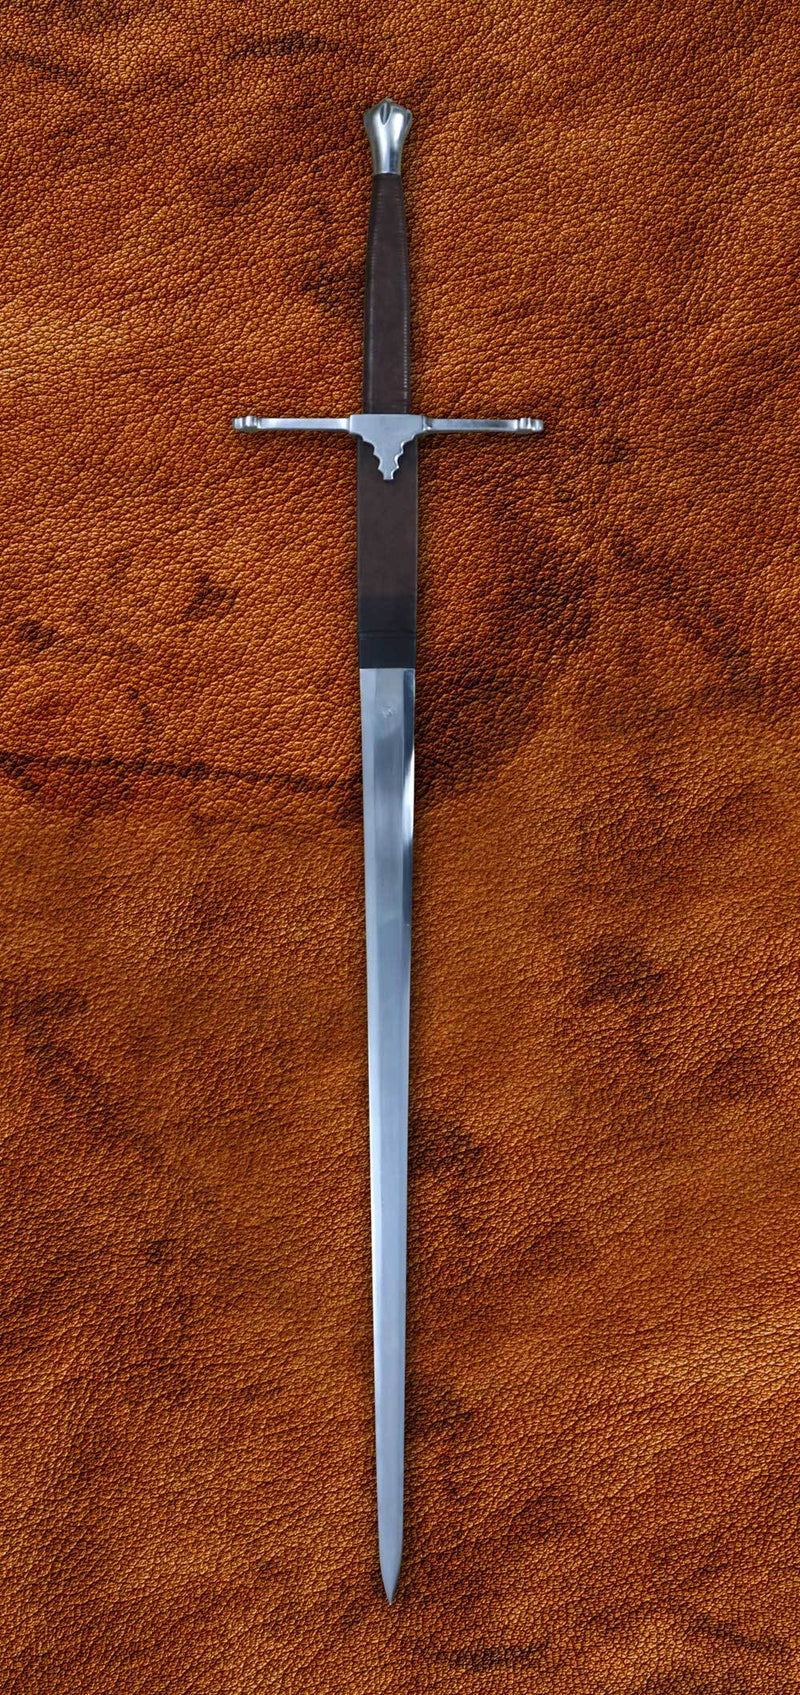 The William Wallace Scottish Claymore Sword – Braveheart Sword | The Medieval Store